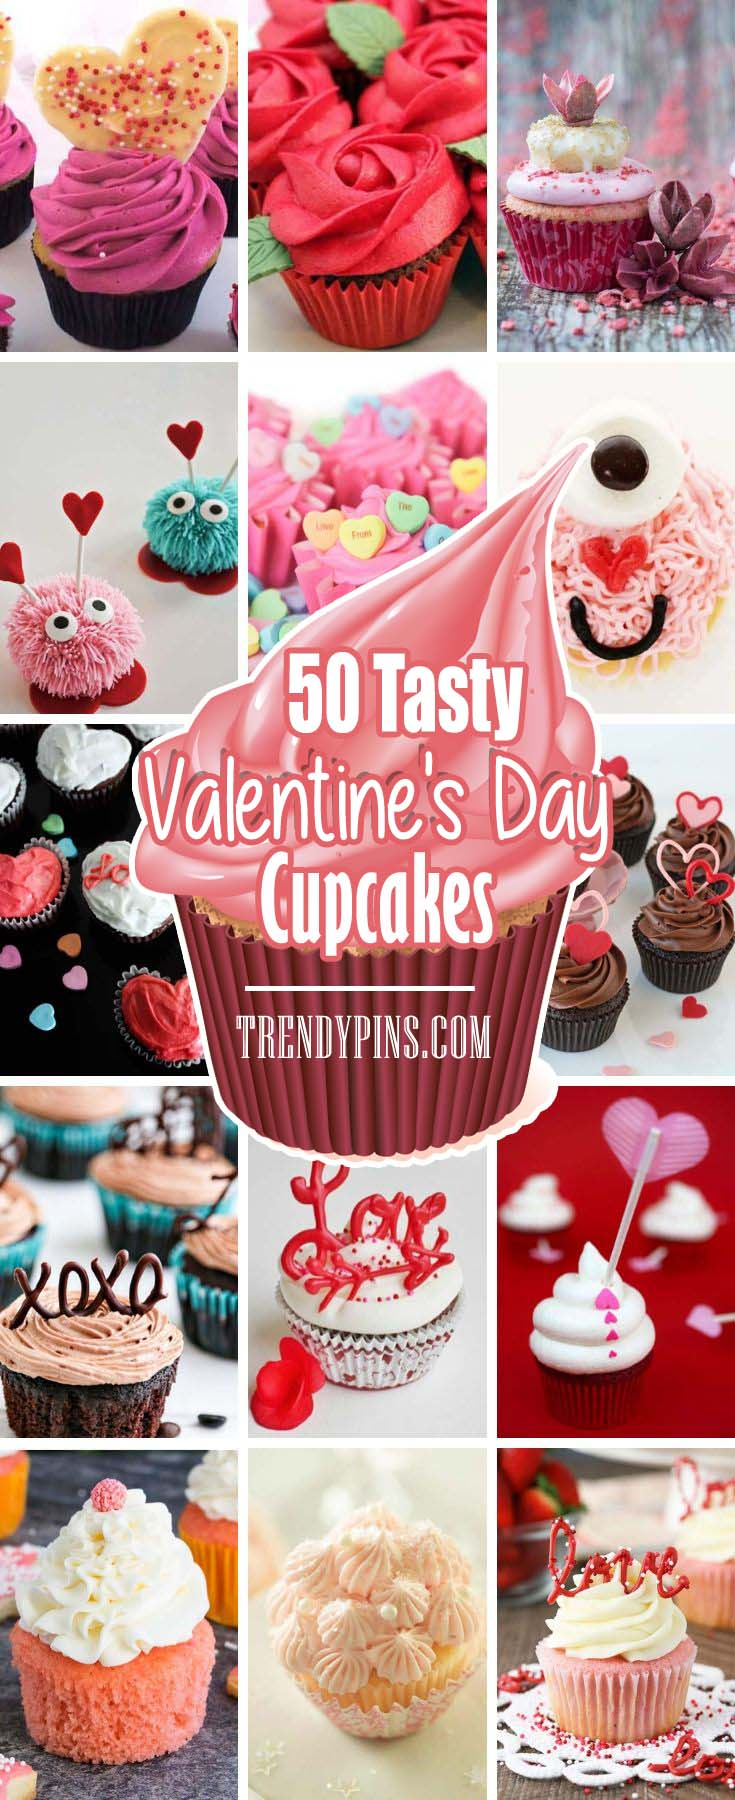 Love is in the air and valentines day right around the corner. Cupcakes are a staple of this love filled holiday. Check out these cute designed cupcakes perfect for your significant other. #Valentine's Day #recipes #cupcakes #trendypins